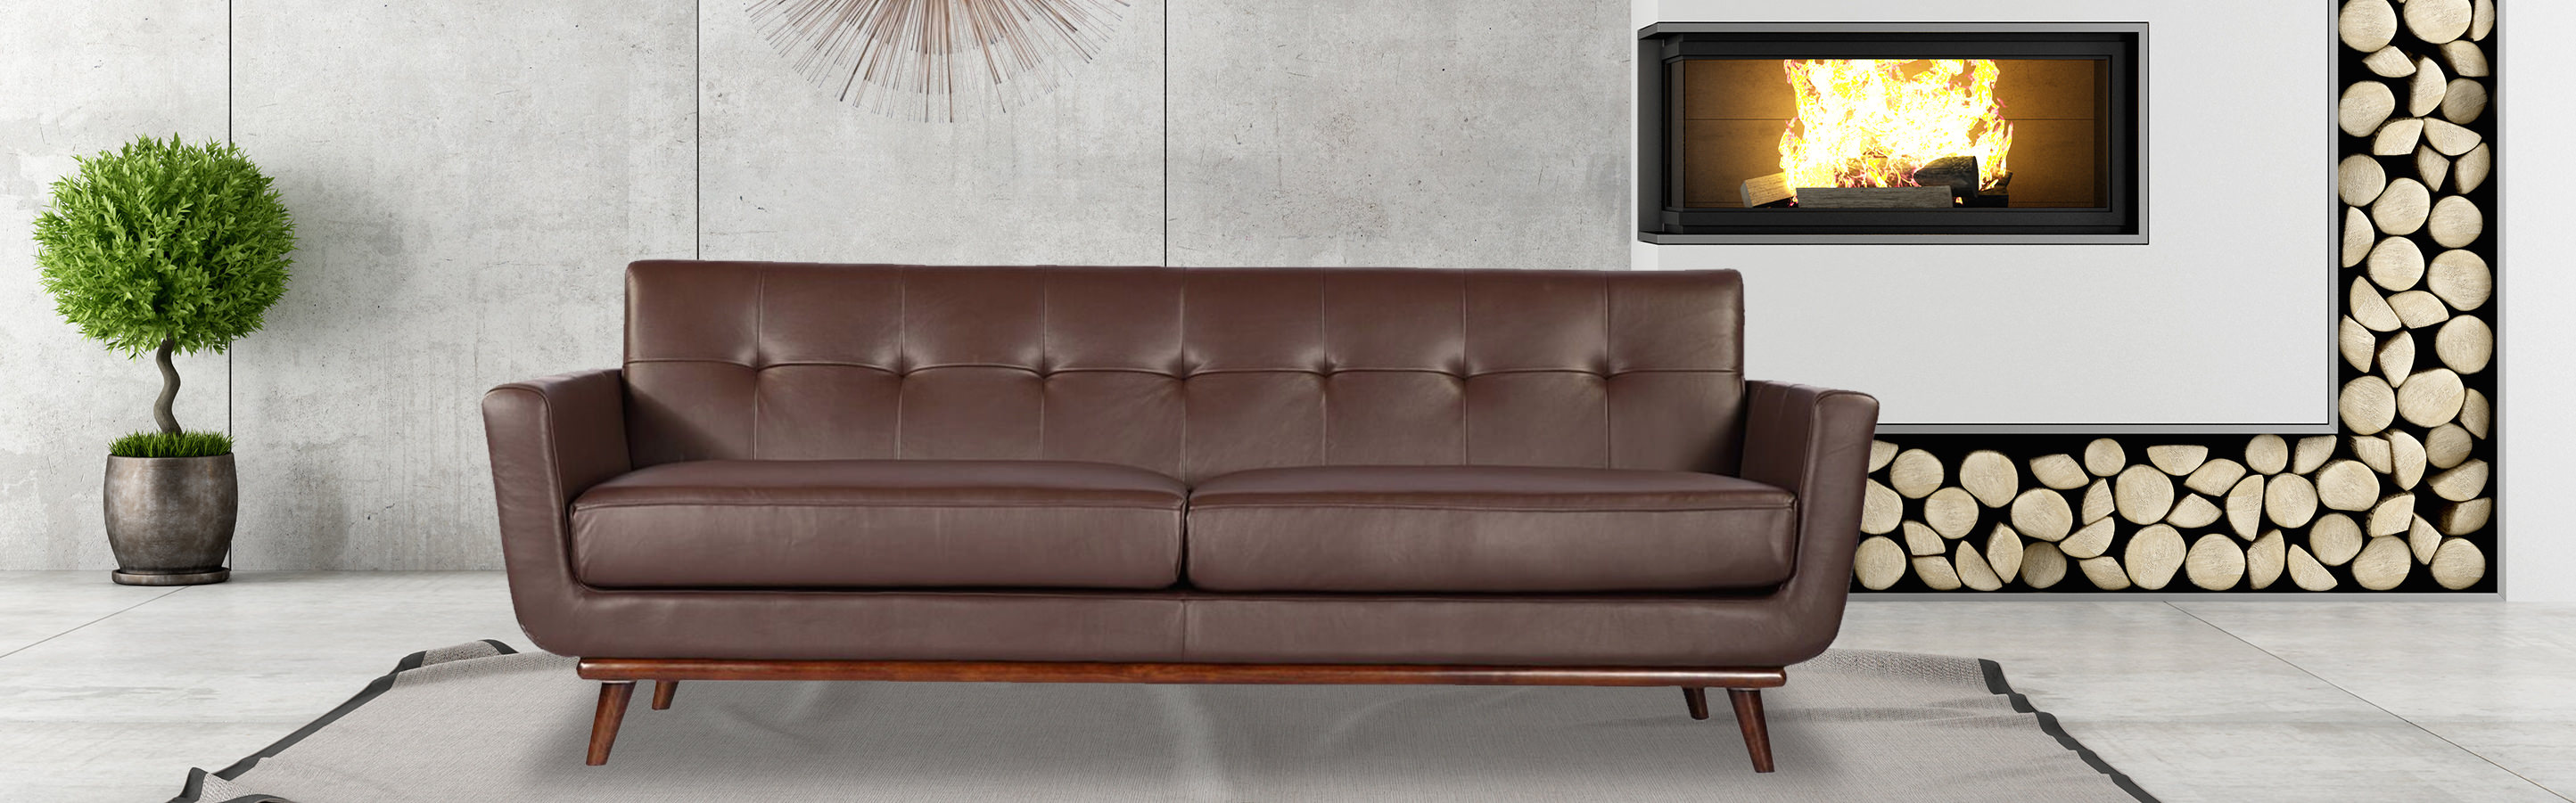 Jackie Mid Century Modern 3 Seater Sofa by Kar l